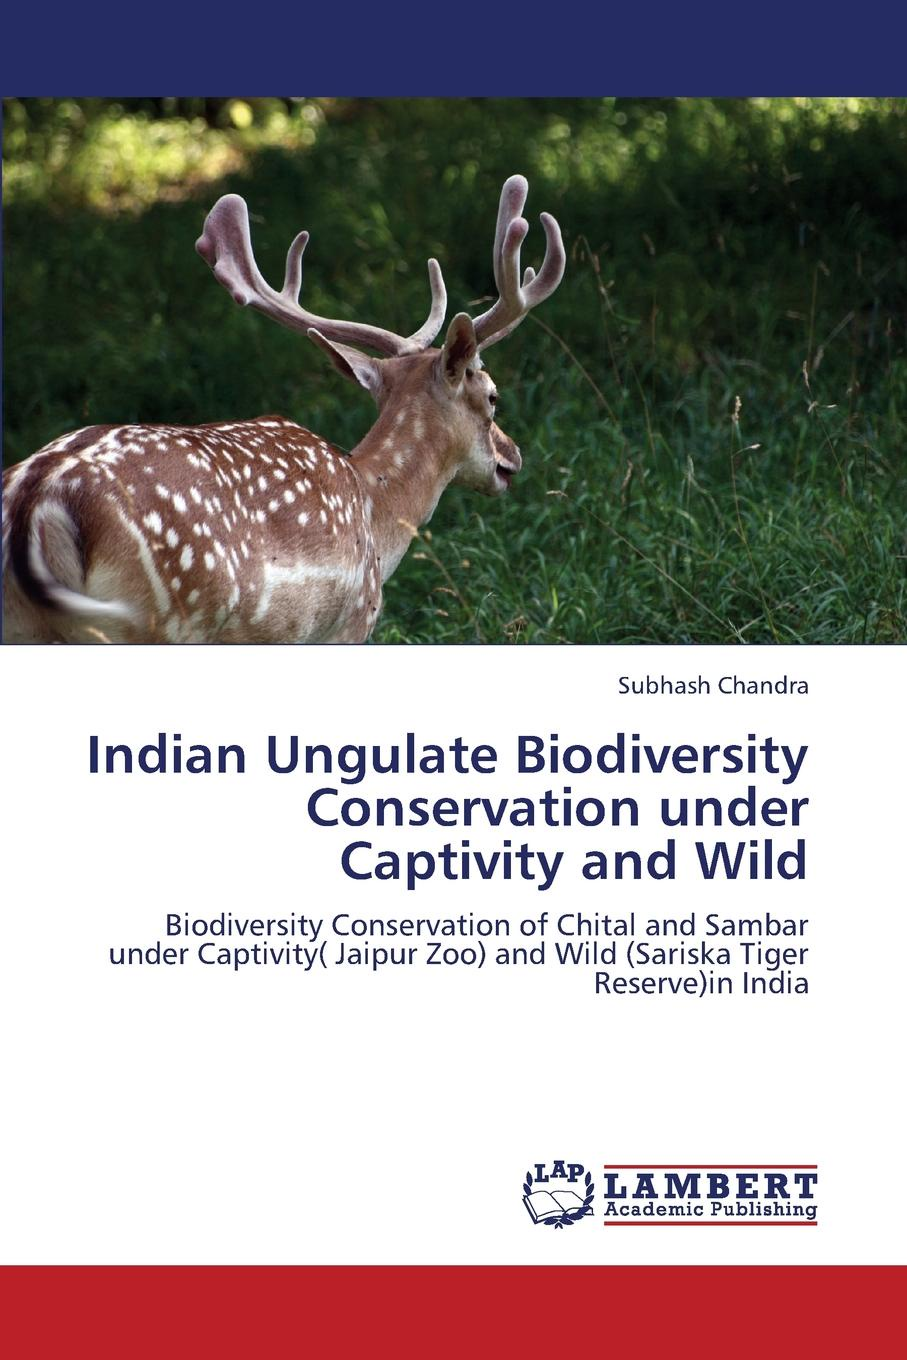 Chandra Subhash Indian Ungulate Biodiversity Conservation Under Captivity and Wild dilys roe biodiversity conservation and poverty alleviation exploring the evidence for a link